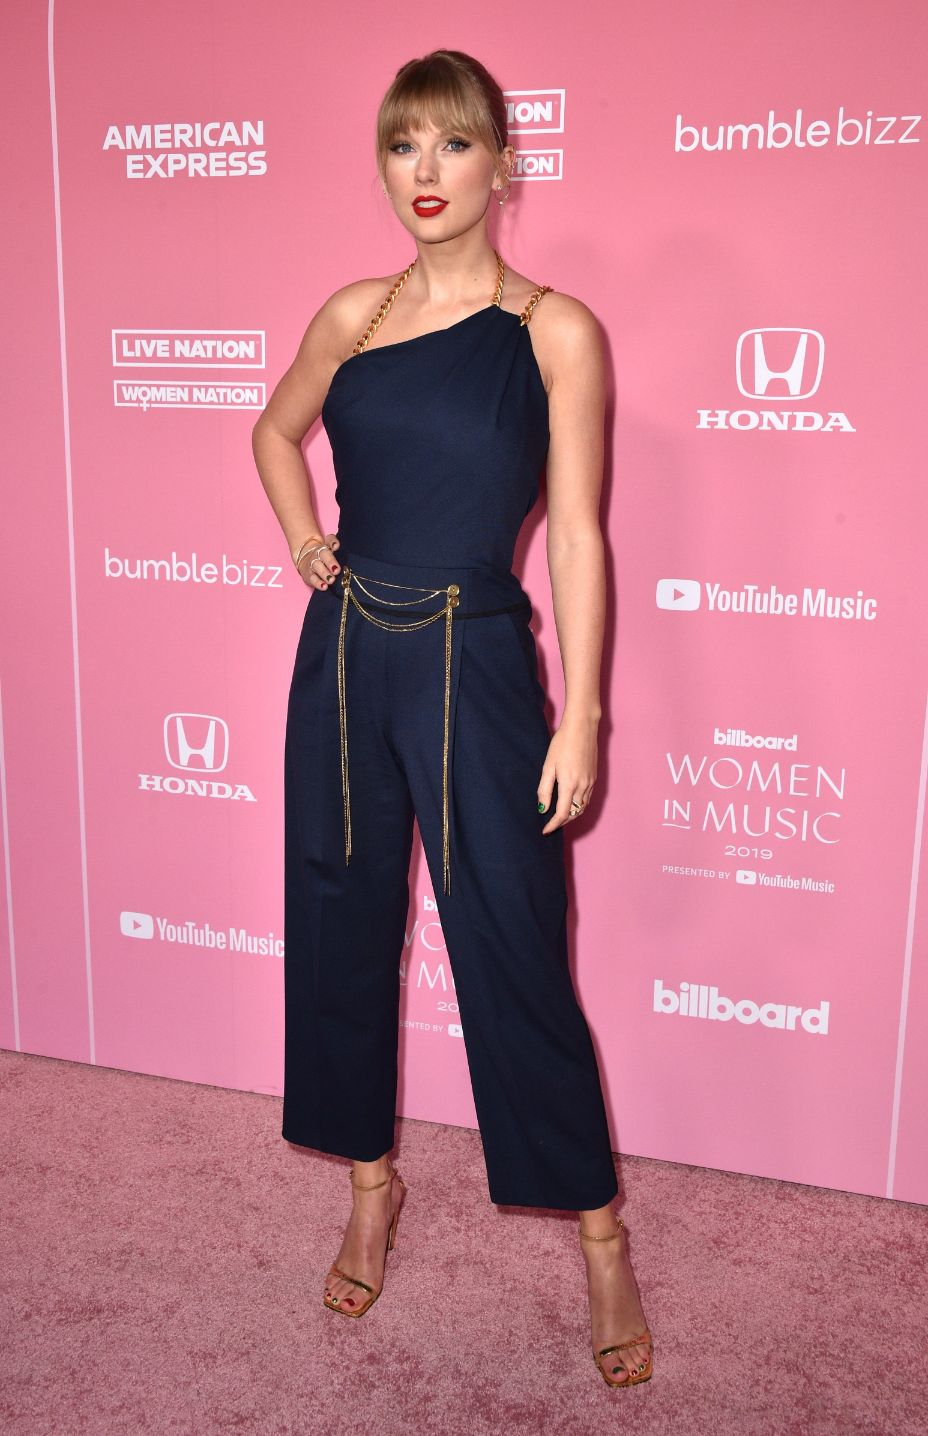 taylor-swift-in-oscar-de-la-renta-2019-billboard-women-in-music-event